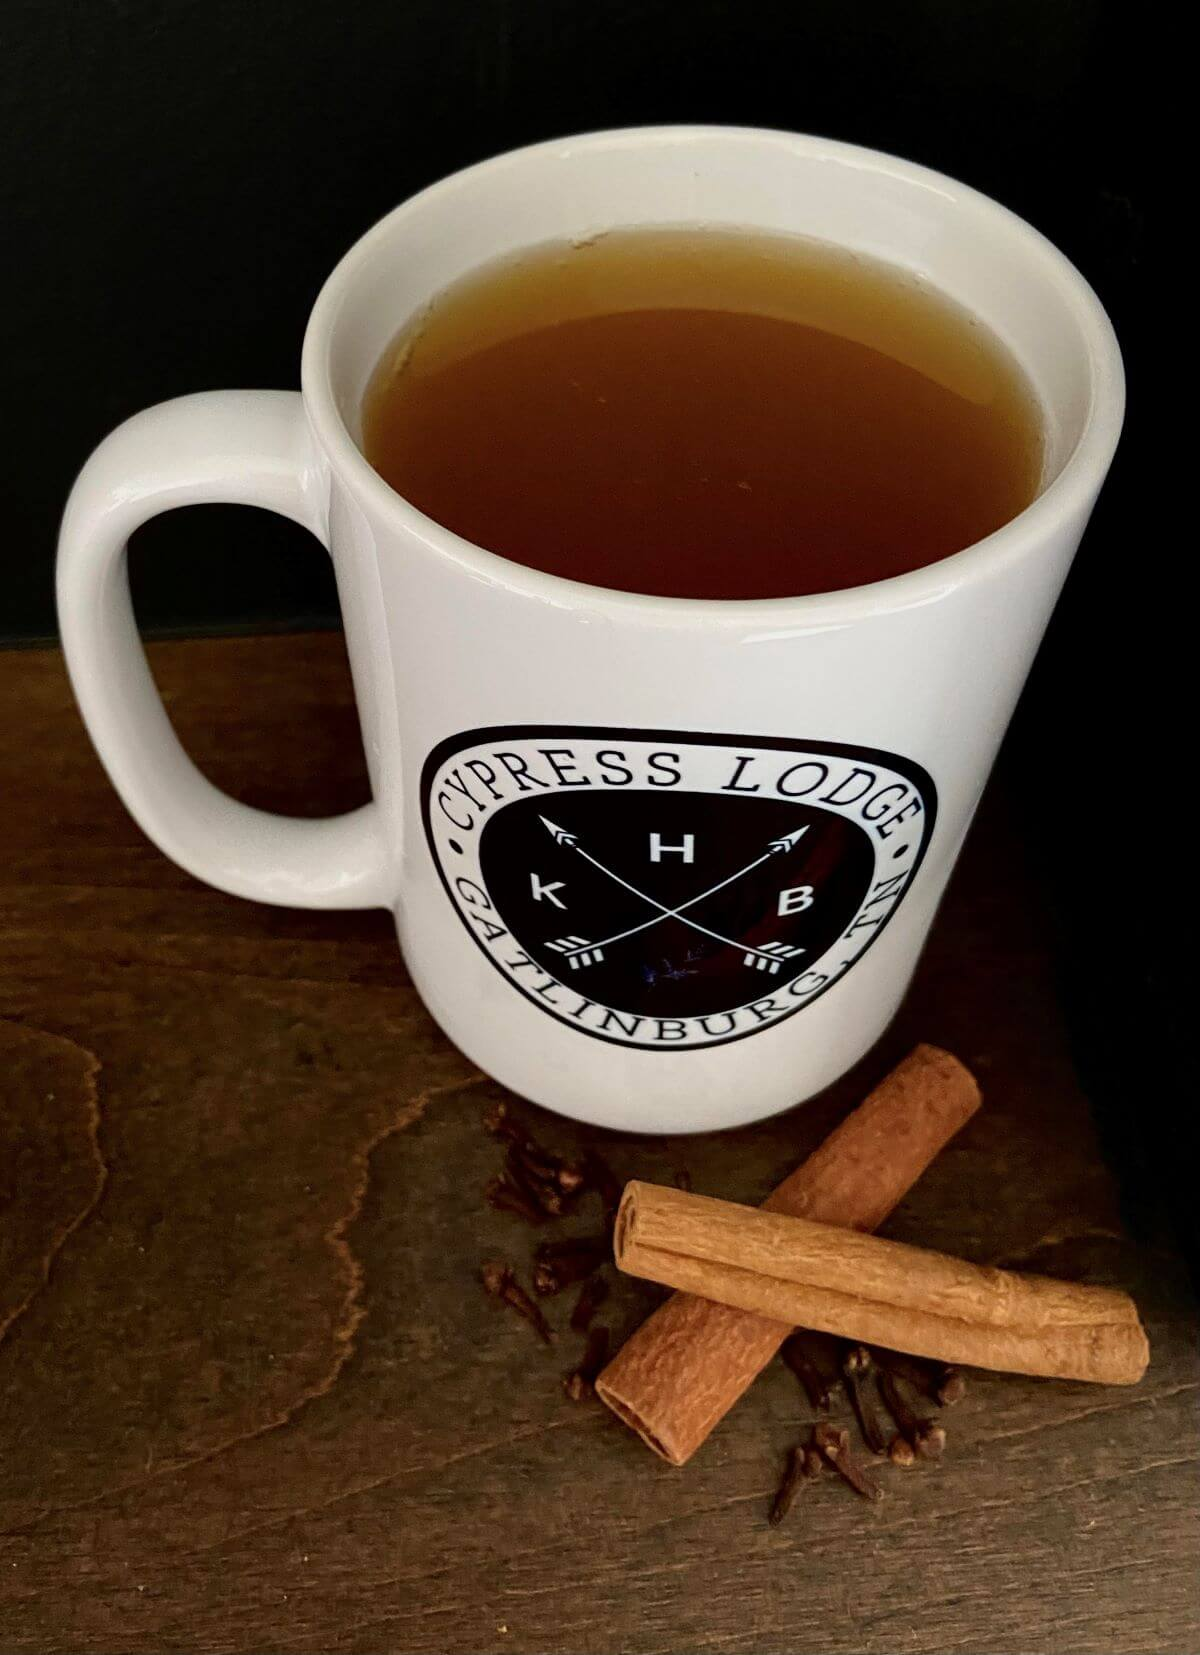 KHB Cypress Lodge Mug filled with warm peanut butter whiskey apple cider, a few cinnamon sticks and spices laying on the table beside the mug